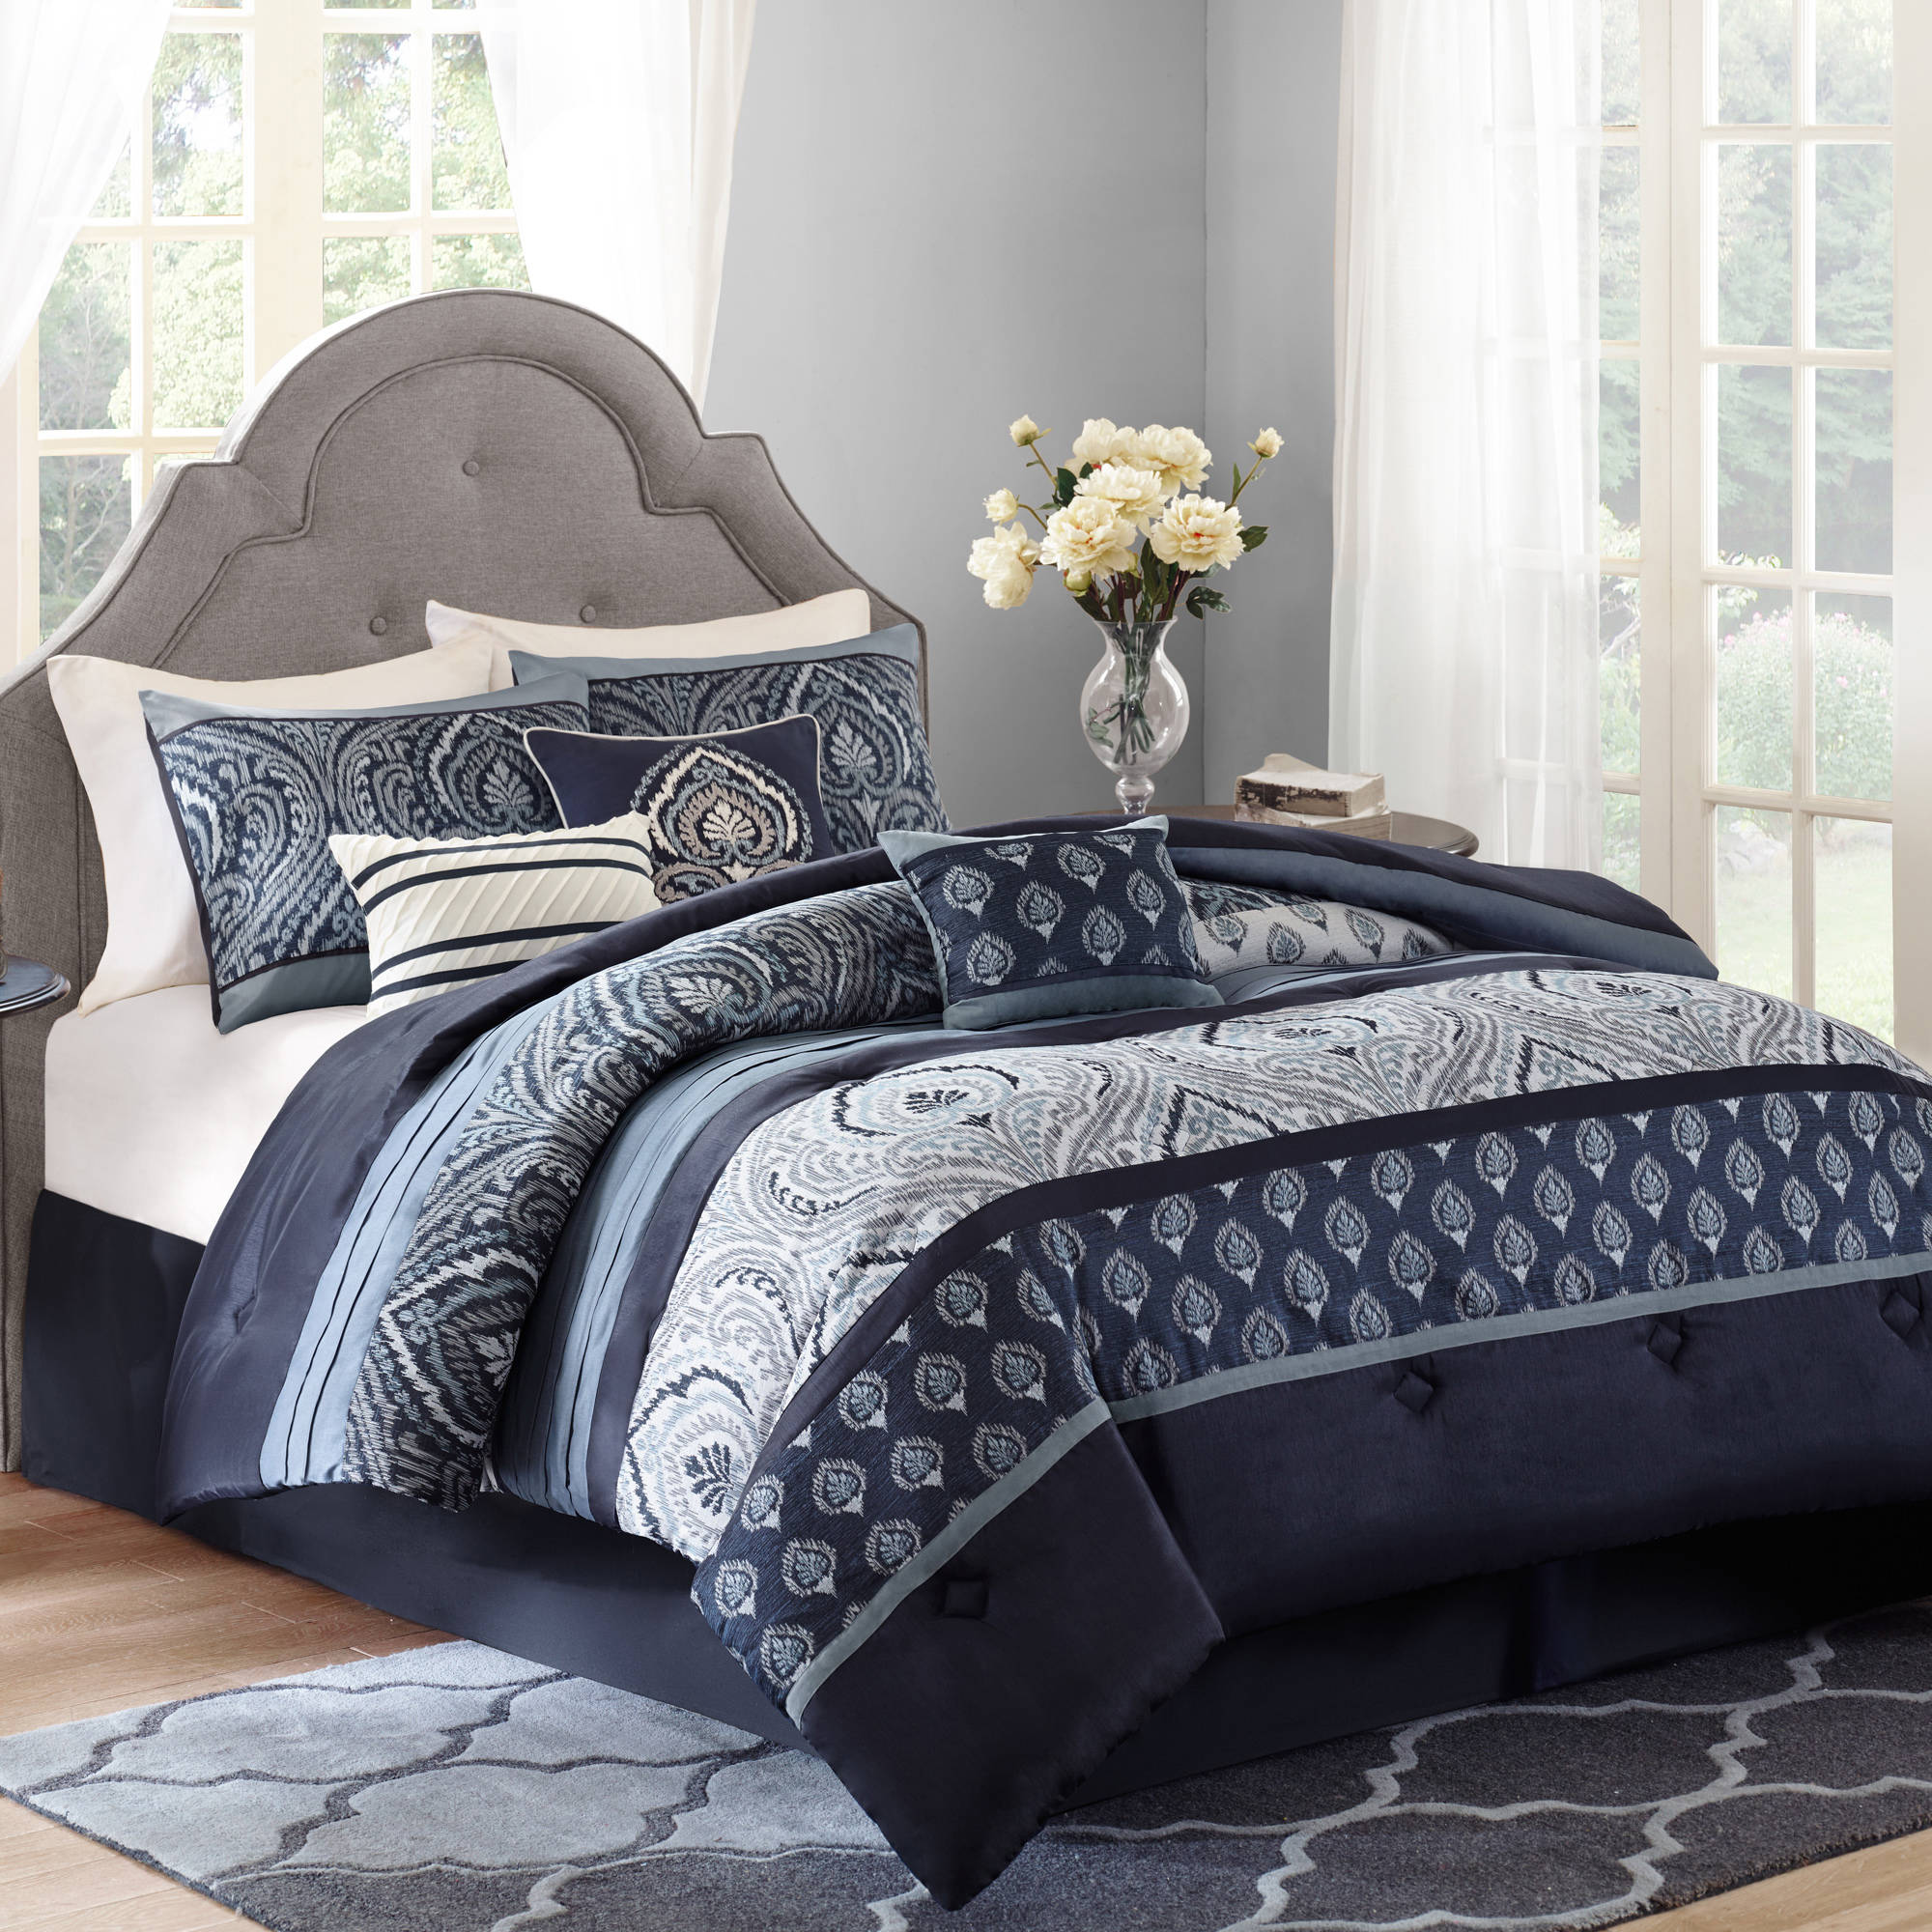 Better Homes and Gardens Black and White Damask 5-Piece Comforter ...